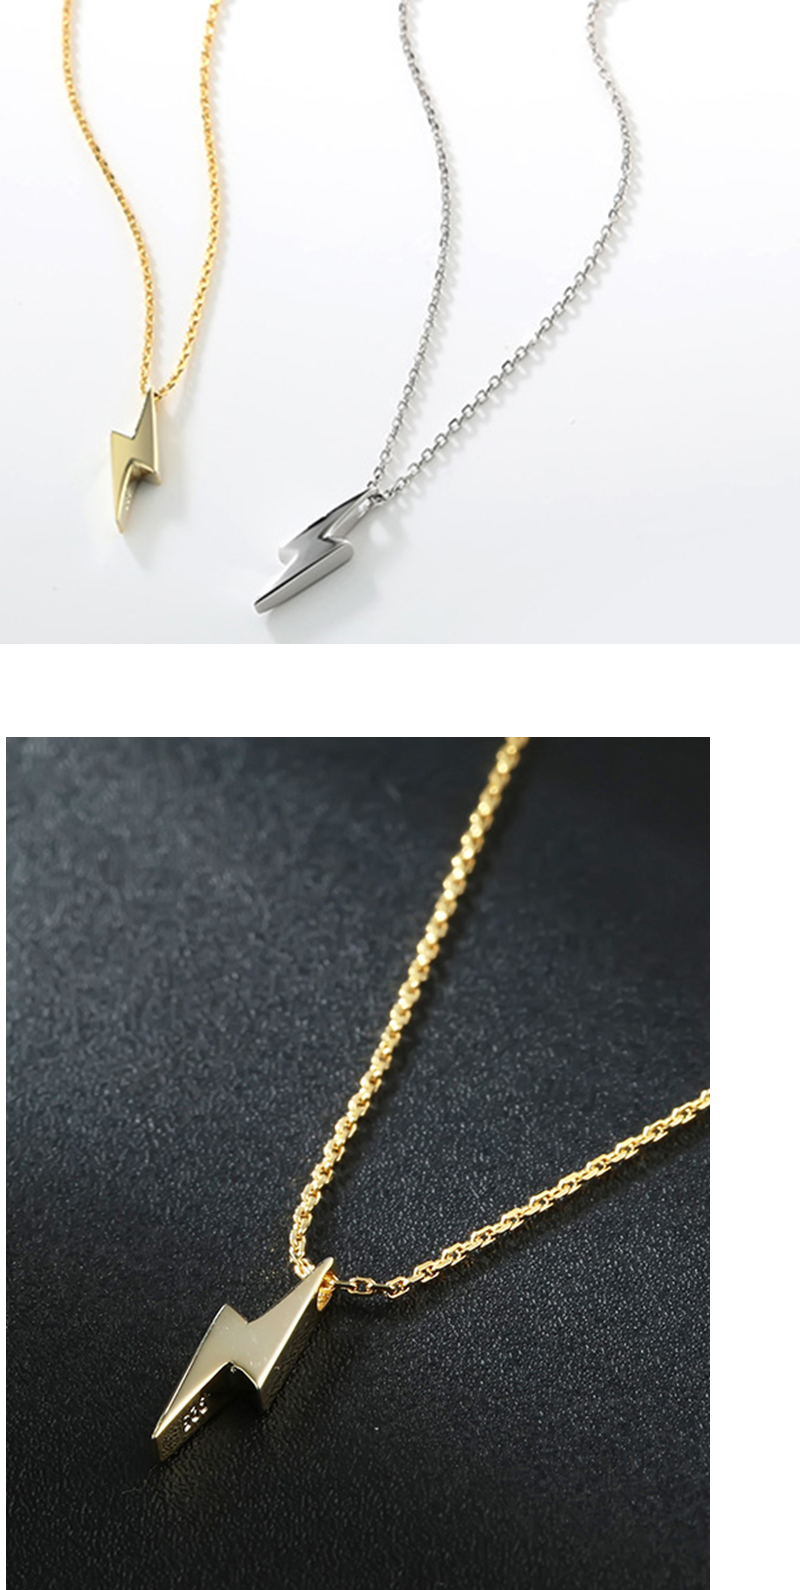 H0148d39d885244079dfc4173bc52ae9bL Dorado 925 Sterling Silver Necklaces Golden Silver Lightning Pendant Necklaces Fine Jewelry Gift Birthday  For Women